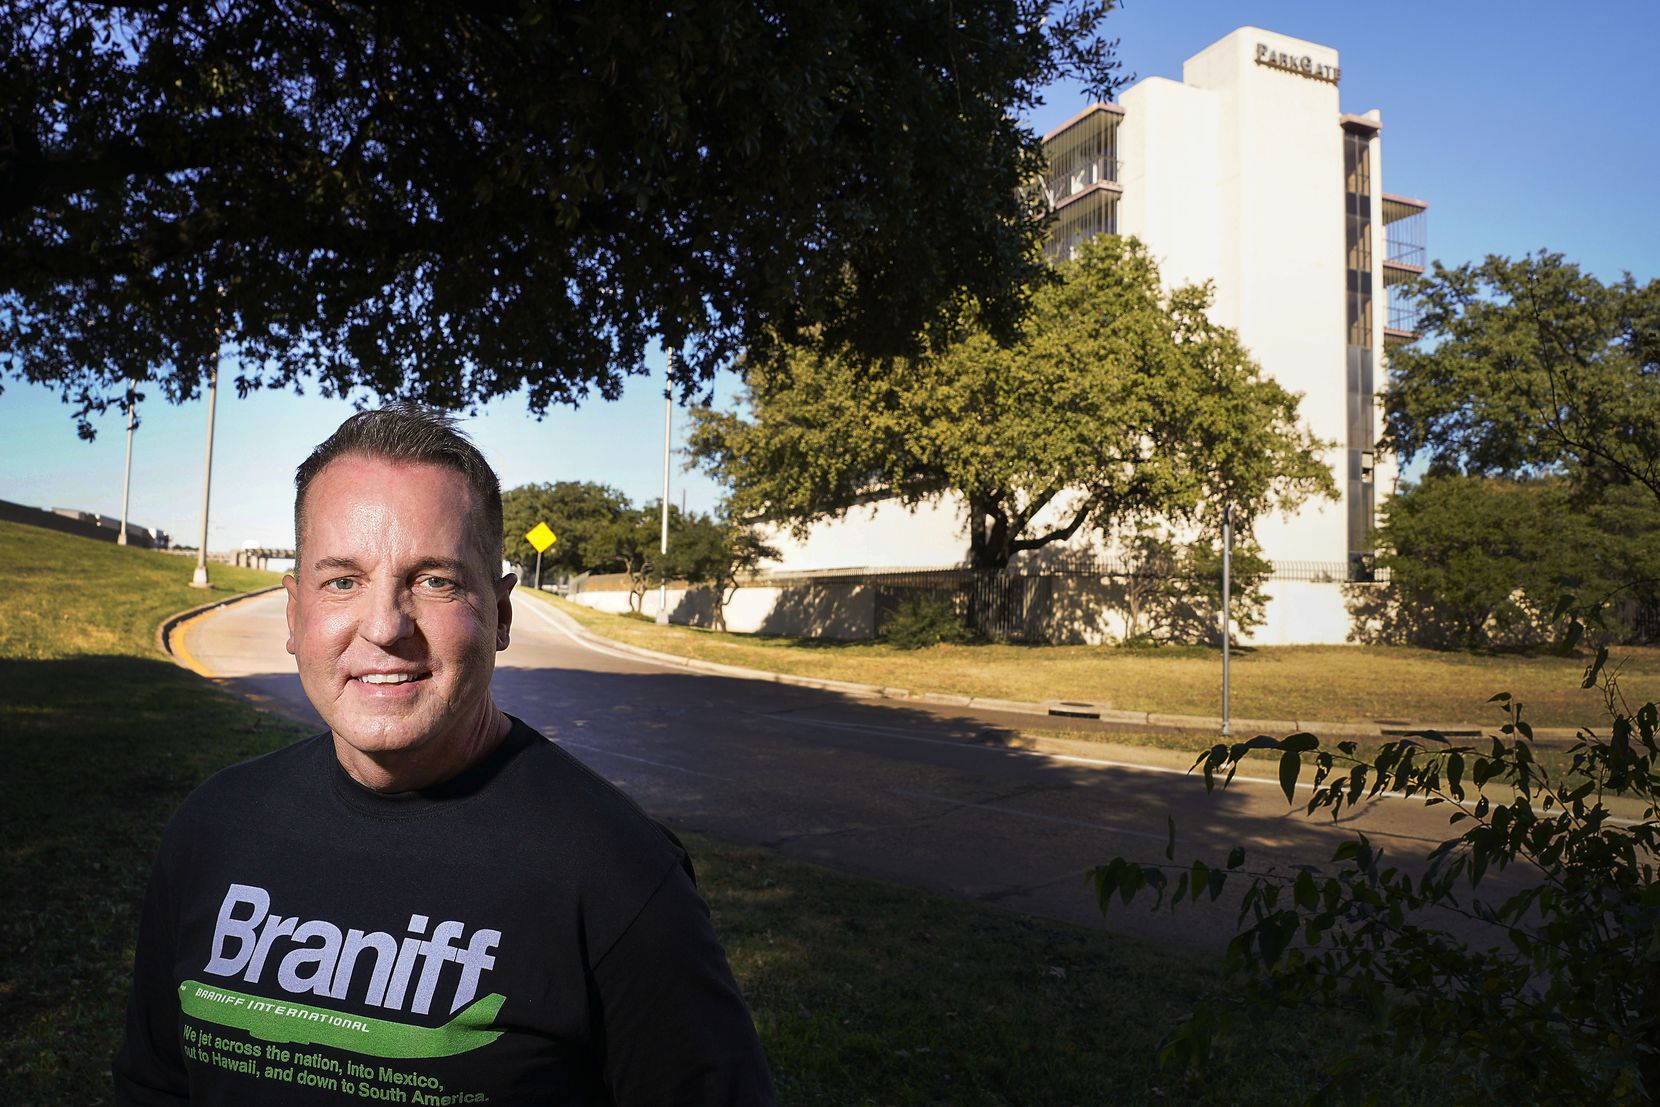 Ben Cass, president of Braniff Airways, has been working with developer Centurion American on a deal to put the Braniff name on a new boutique hotel, along with other nods to the defunct company and aviation history. Braniff's former hostess college will be converted into a hotel.